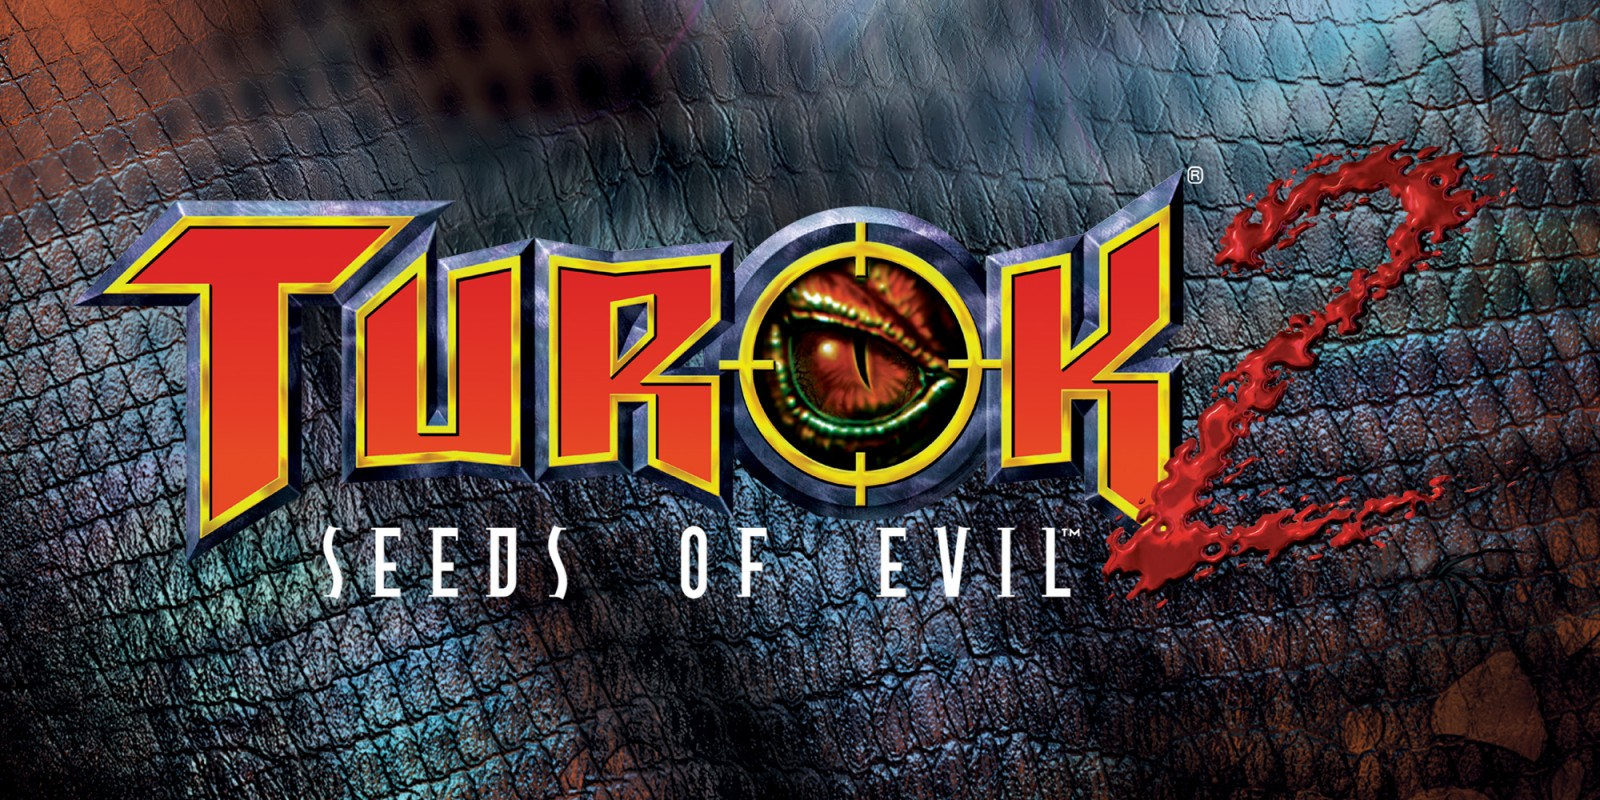 TUROK 2 SEEDS OF EVIL (REMASTERIZADO) (PC)